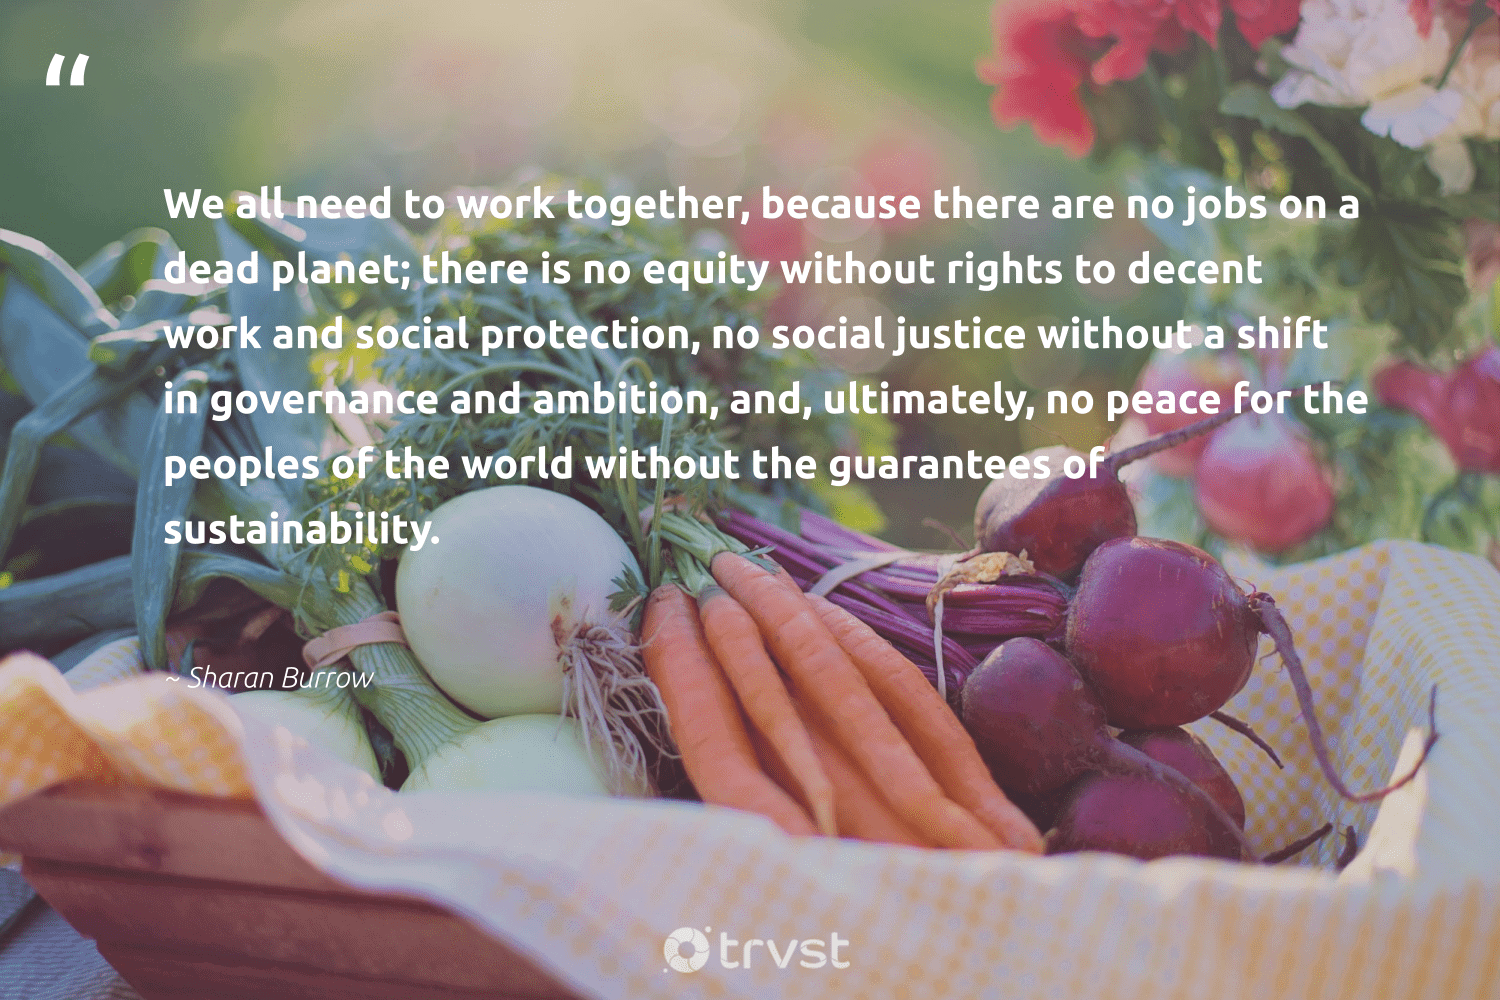 """""""We all need to work together, because there are no jobs on a dead planet; there is no equity without rights to decent work and social protection, no social justice without a shift in governance and ambition, and, ultimately, no peace for the peoples of the world without the guarantees of sustainability.""""  - Sharan Burrow #trvst #quotes #sustainability #peace #justice #socialjustice #sustainable #green #gogreen #collectiveaction #ecofriendly #fashion"""